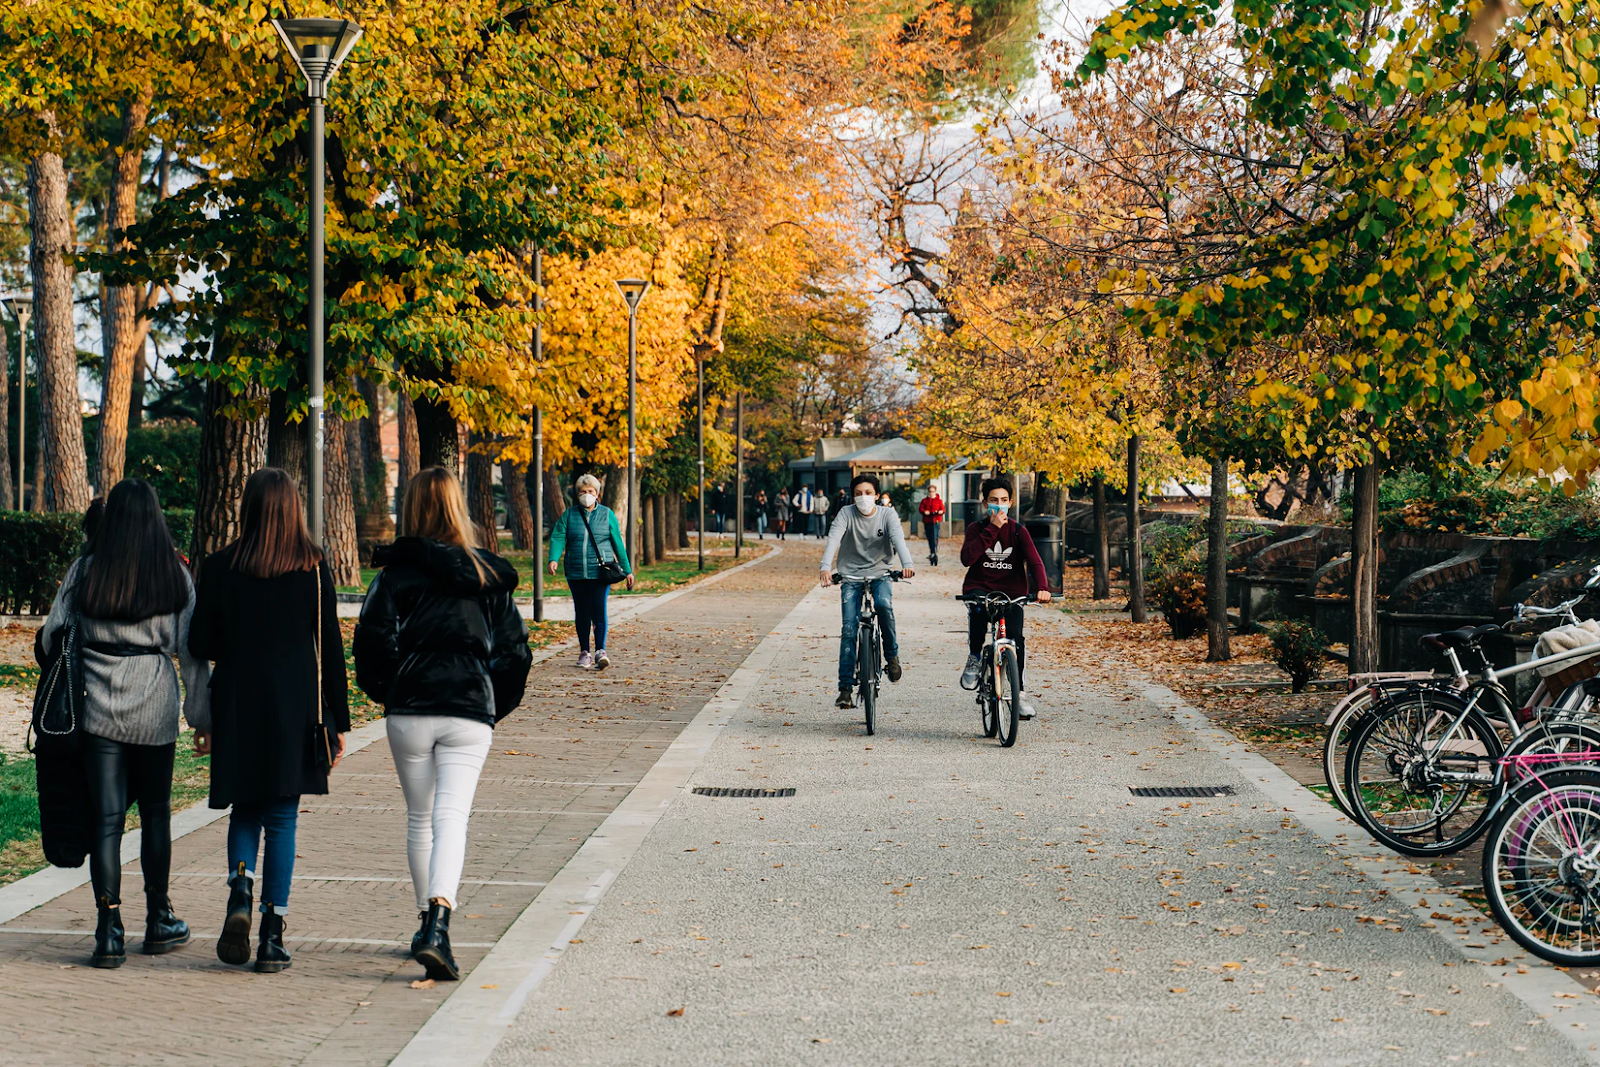 An image of several masked people walking and biking down a path in a park, with trees on either side.